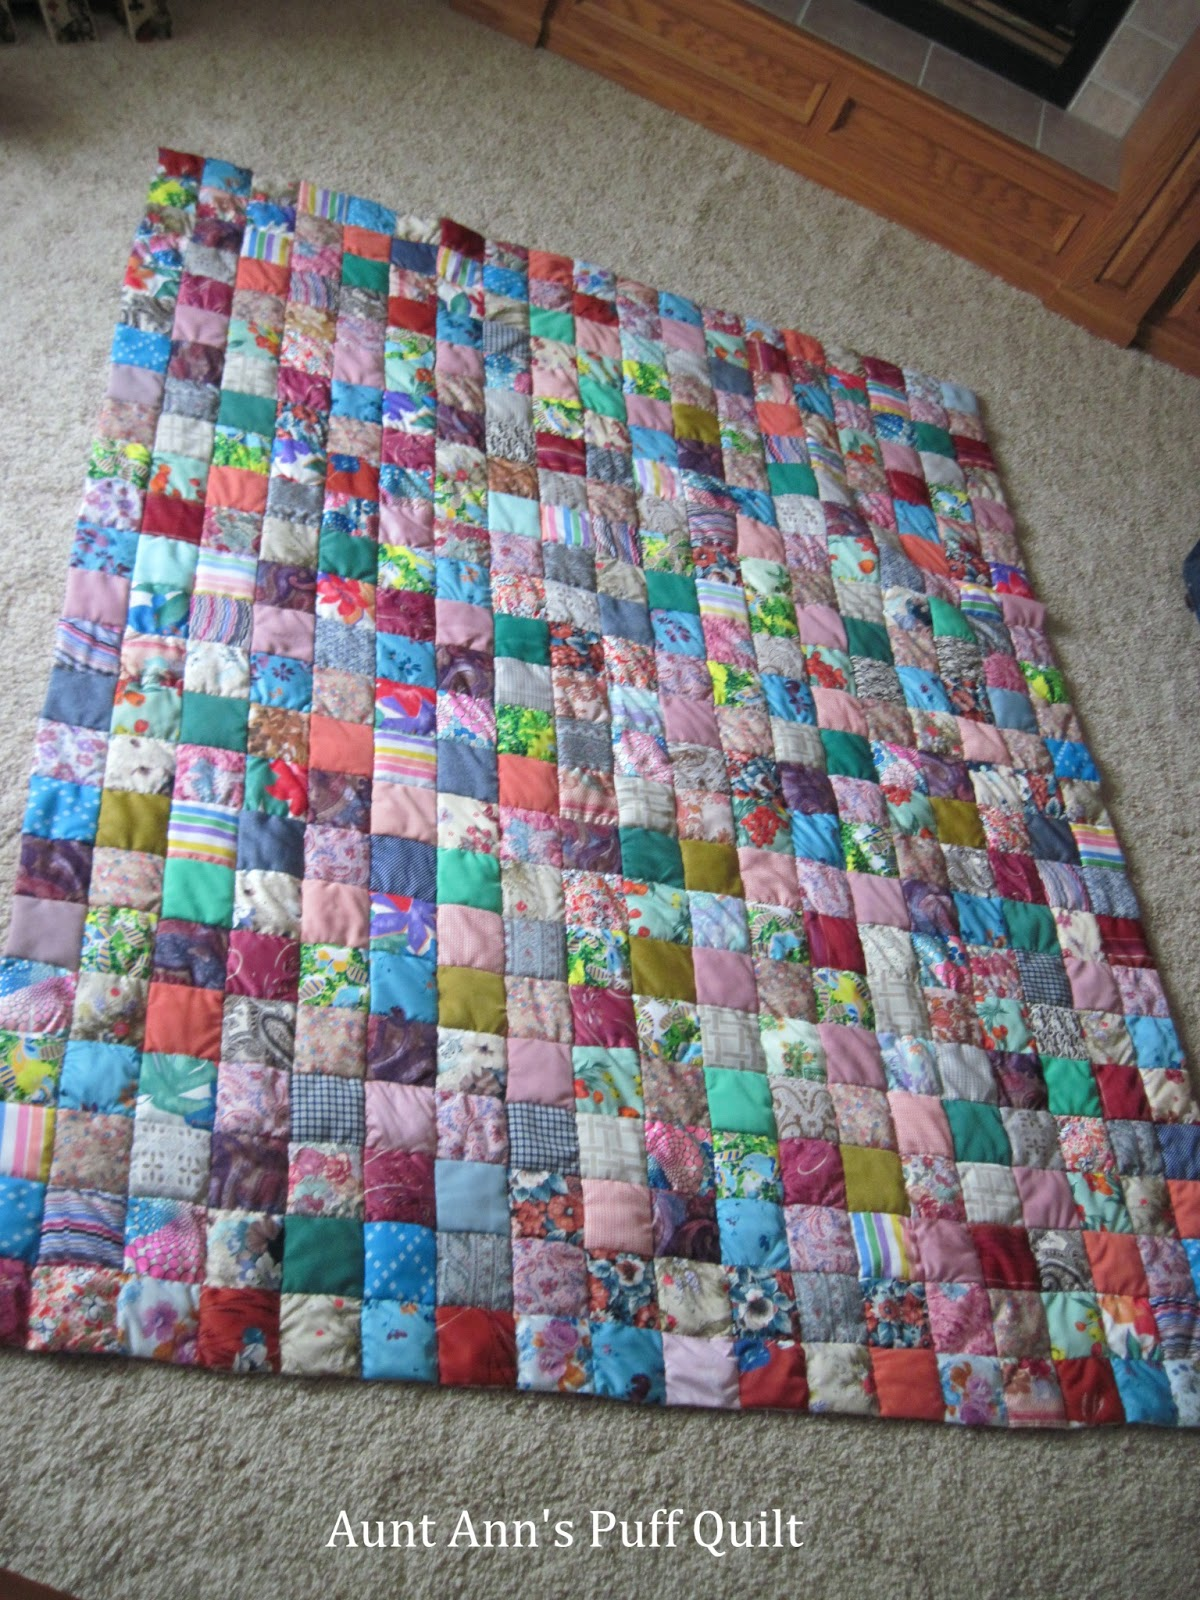 Jean S Quilting Page Aunt Ann S Puff Quilt